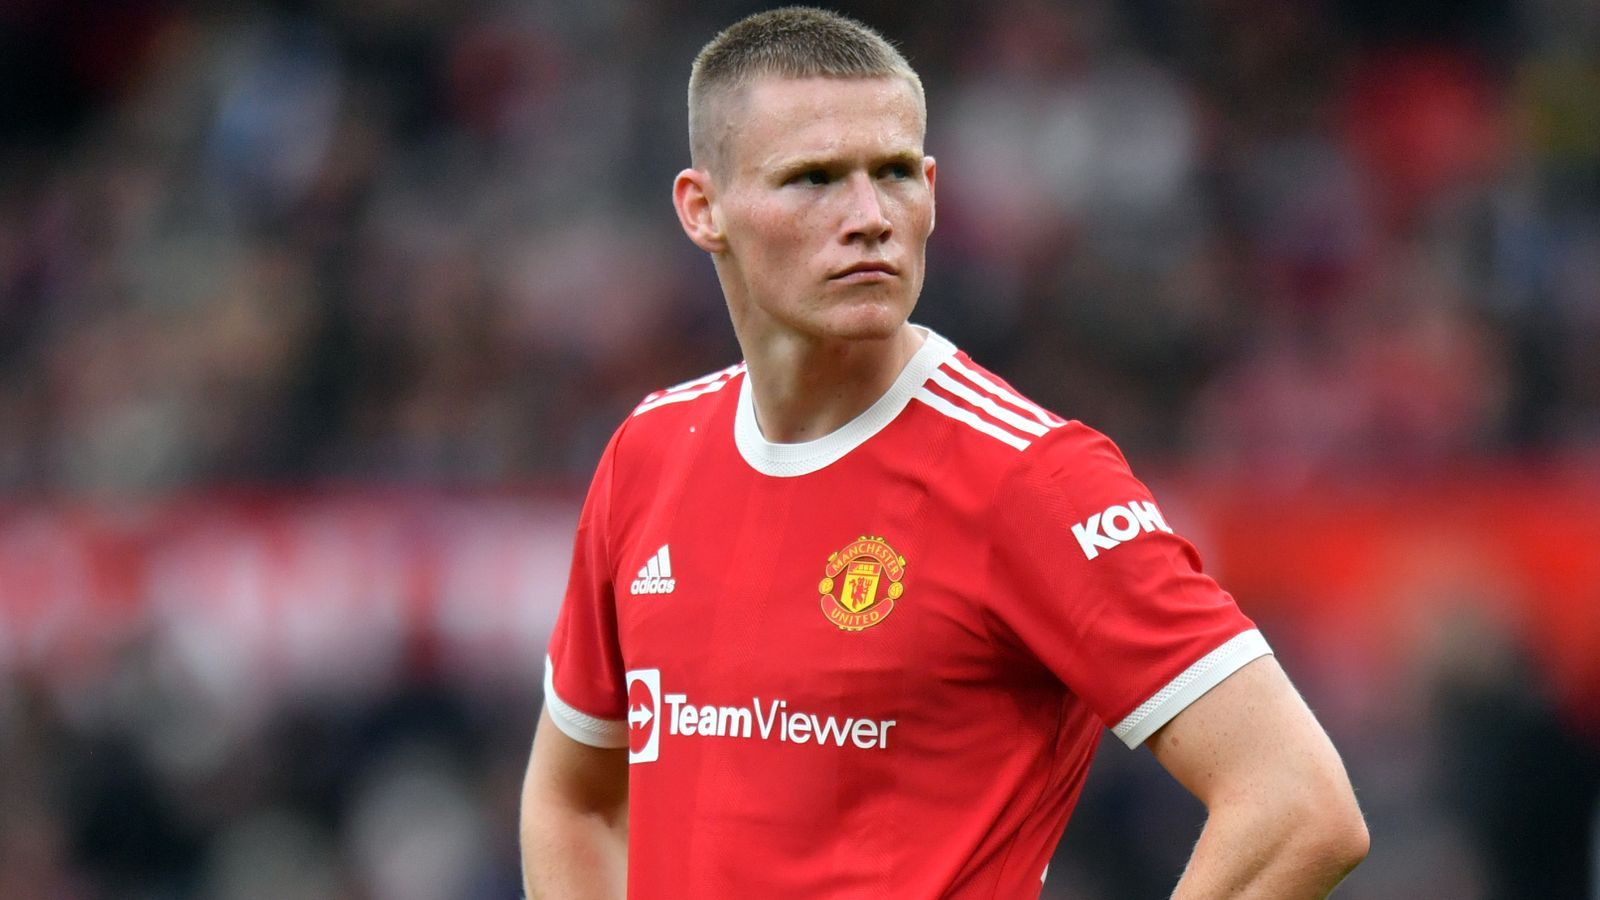 Scott McTominay is not included in the Scotland squad, although Kierney and Andy Robertson have been called up for World Cup qualifiers.